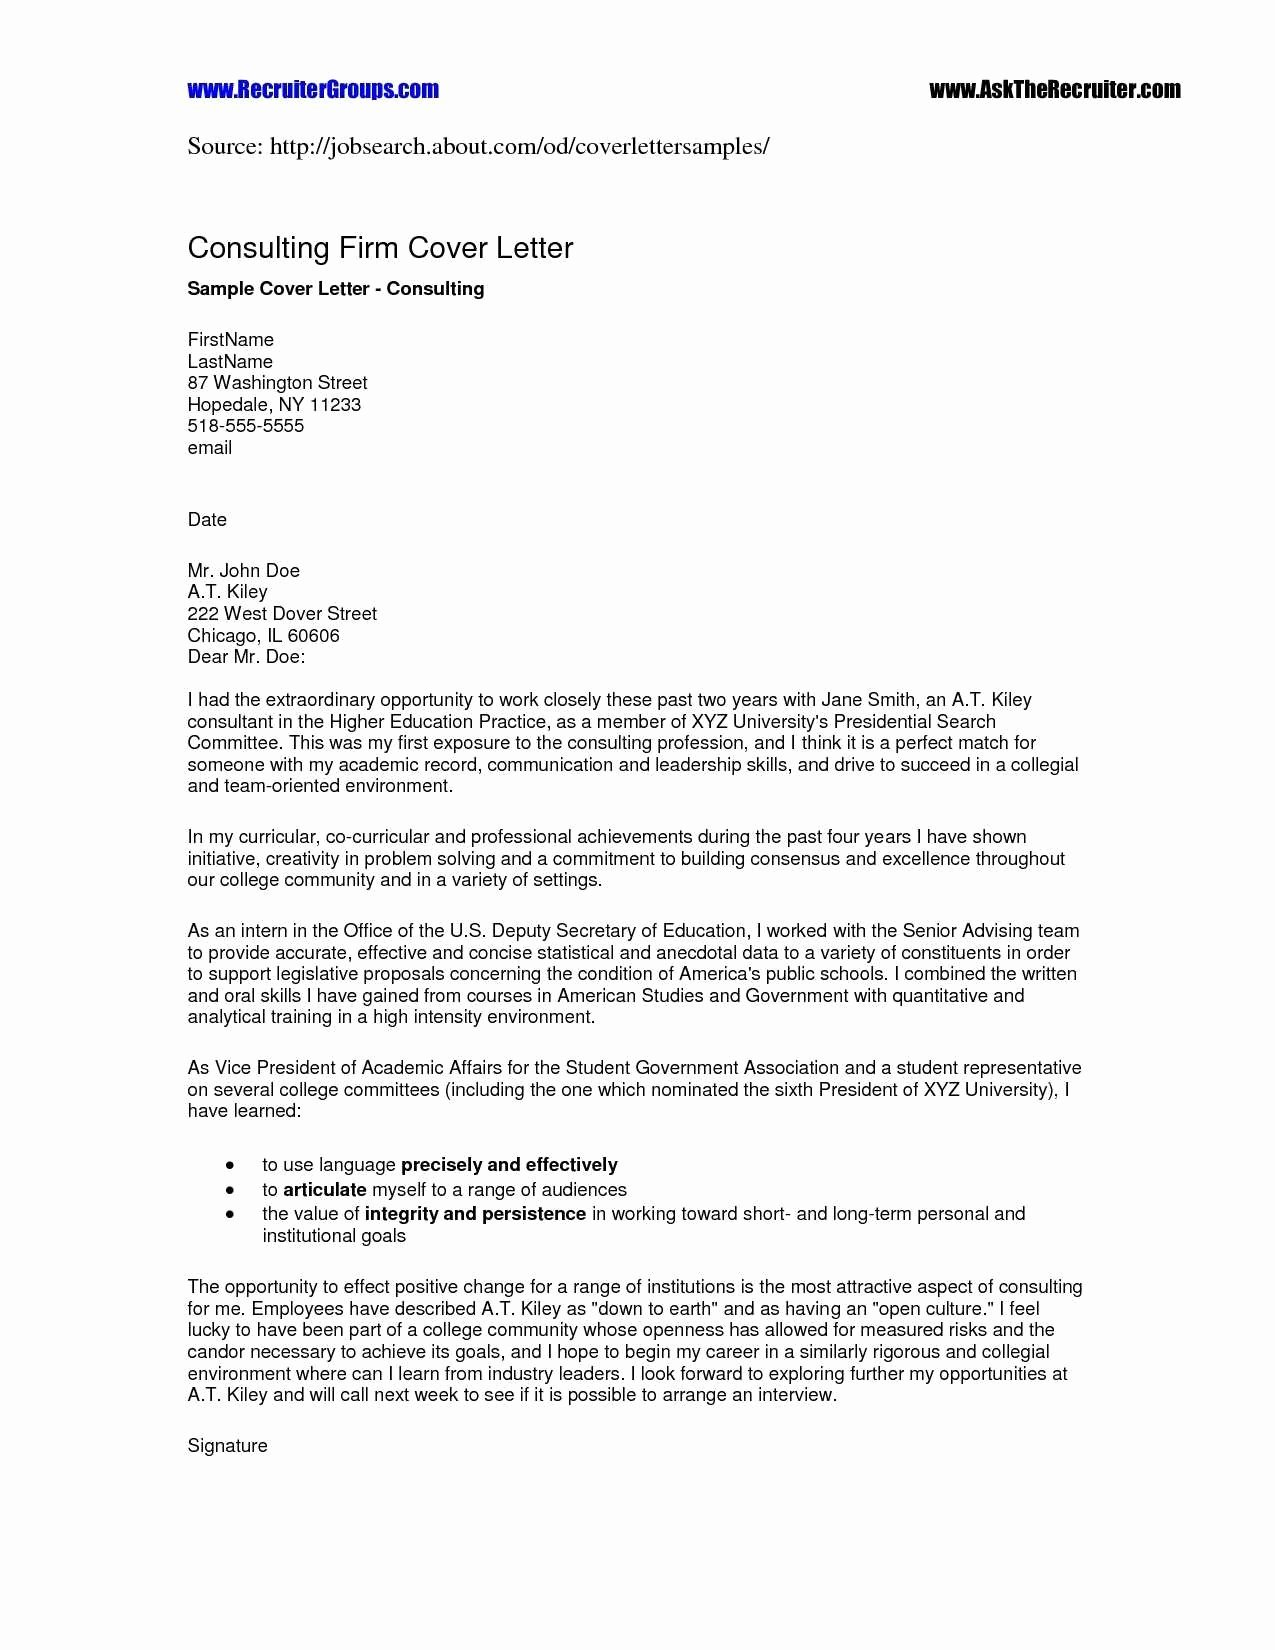 Letter Of Collaboration New Business Collaboration Letter Template Samples